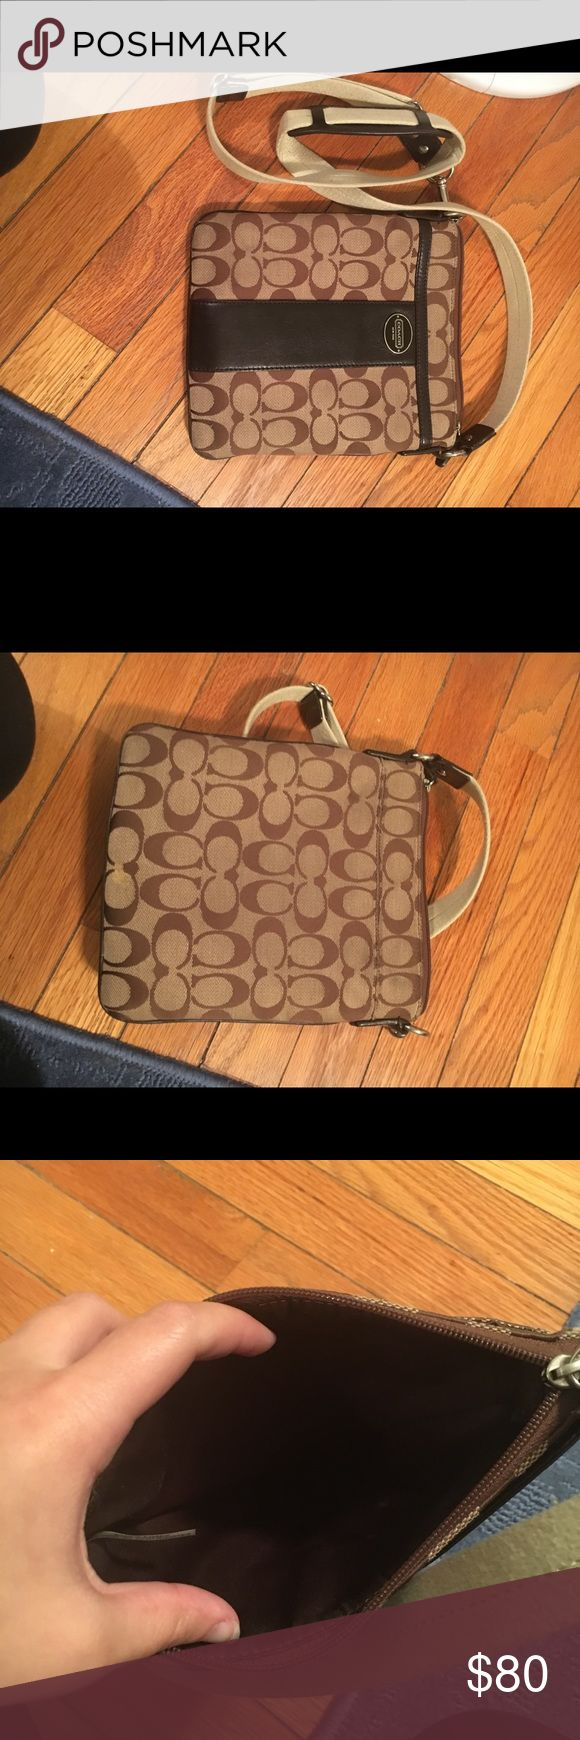 Coach Satchel Coach satchel, lightly used but in good condition. Coach Bags Satchels